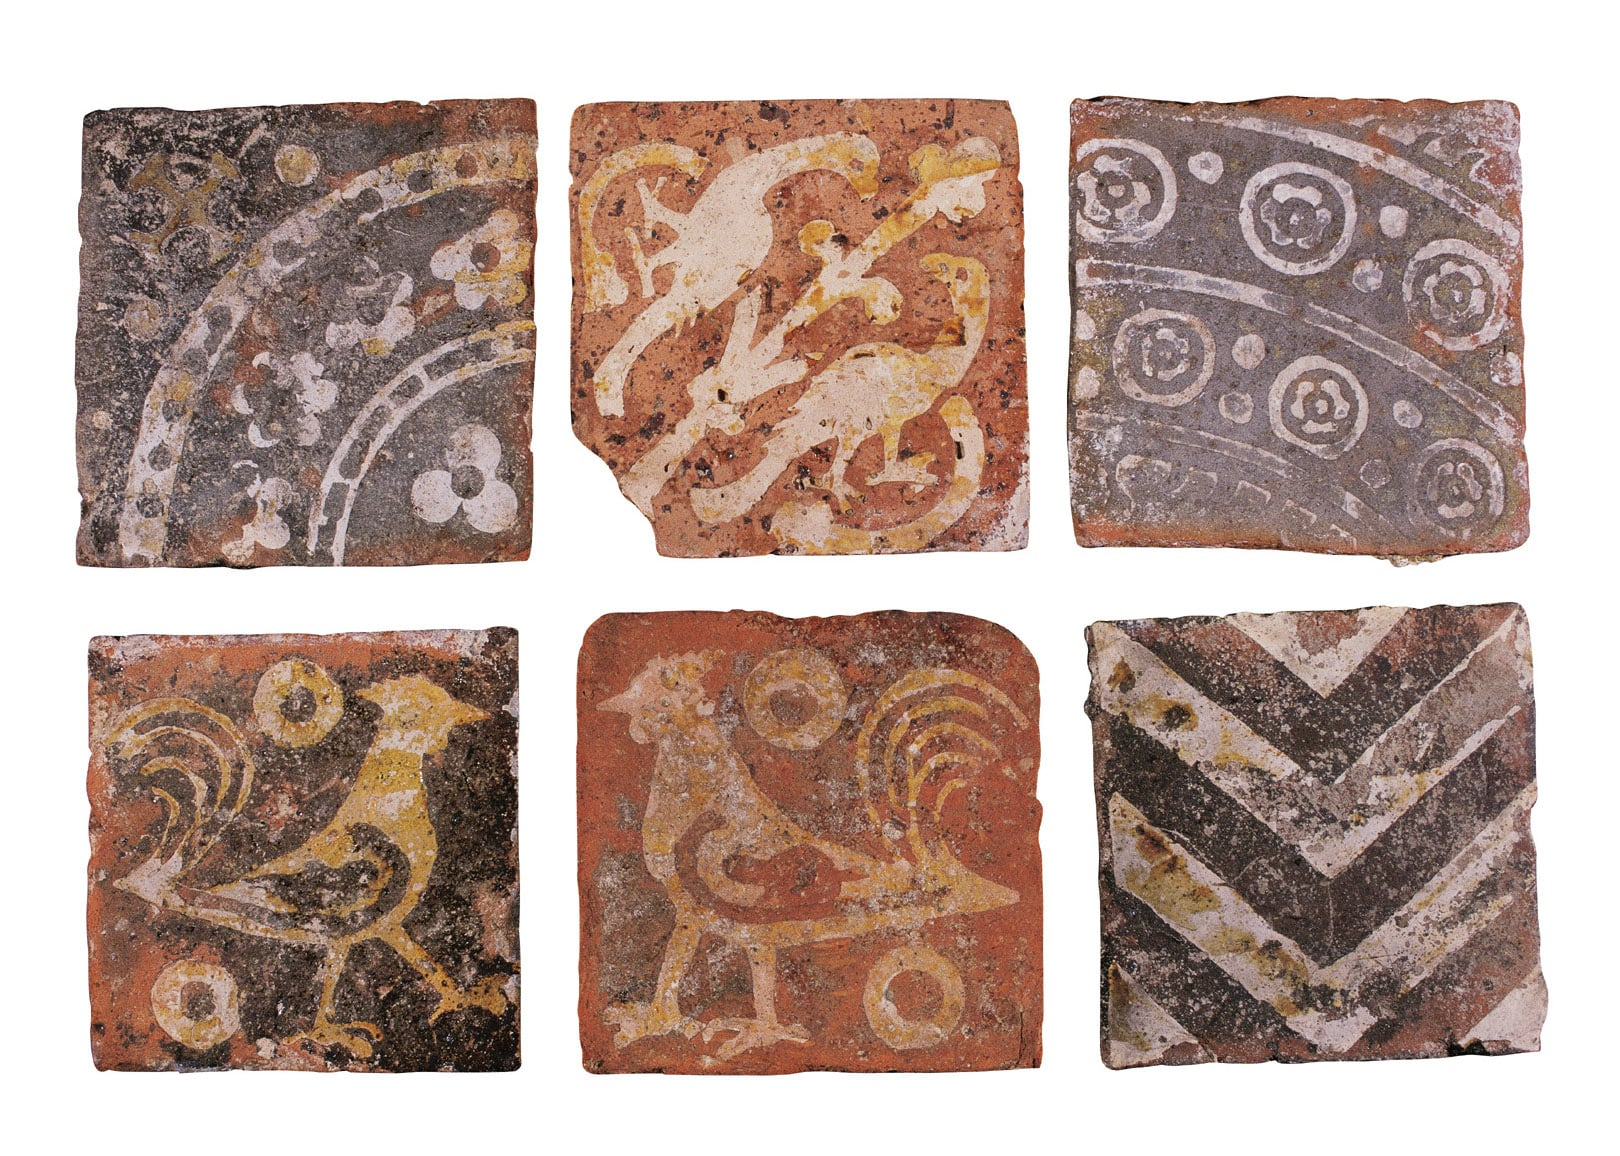 Collection of medieval floor tiles